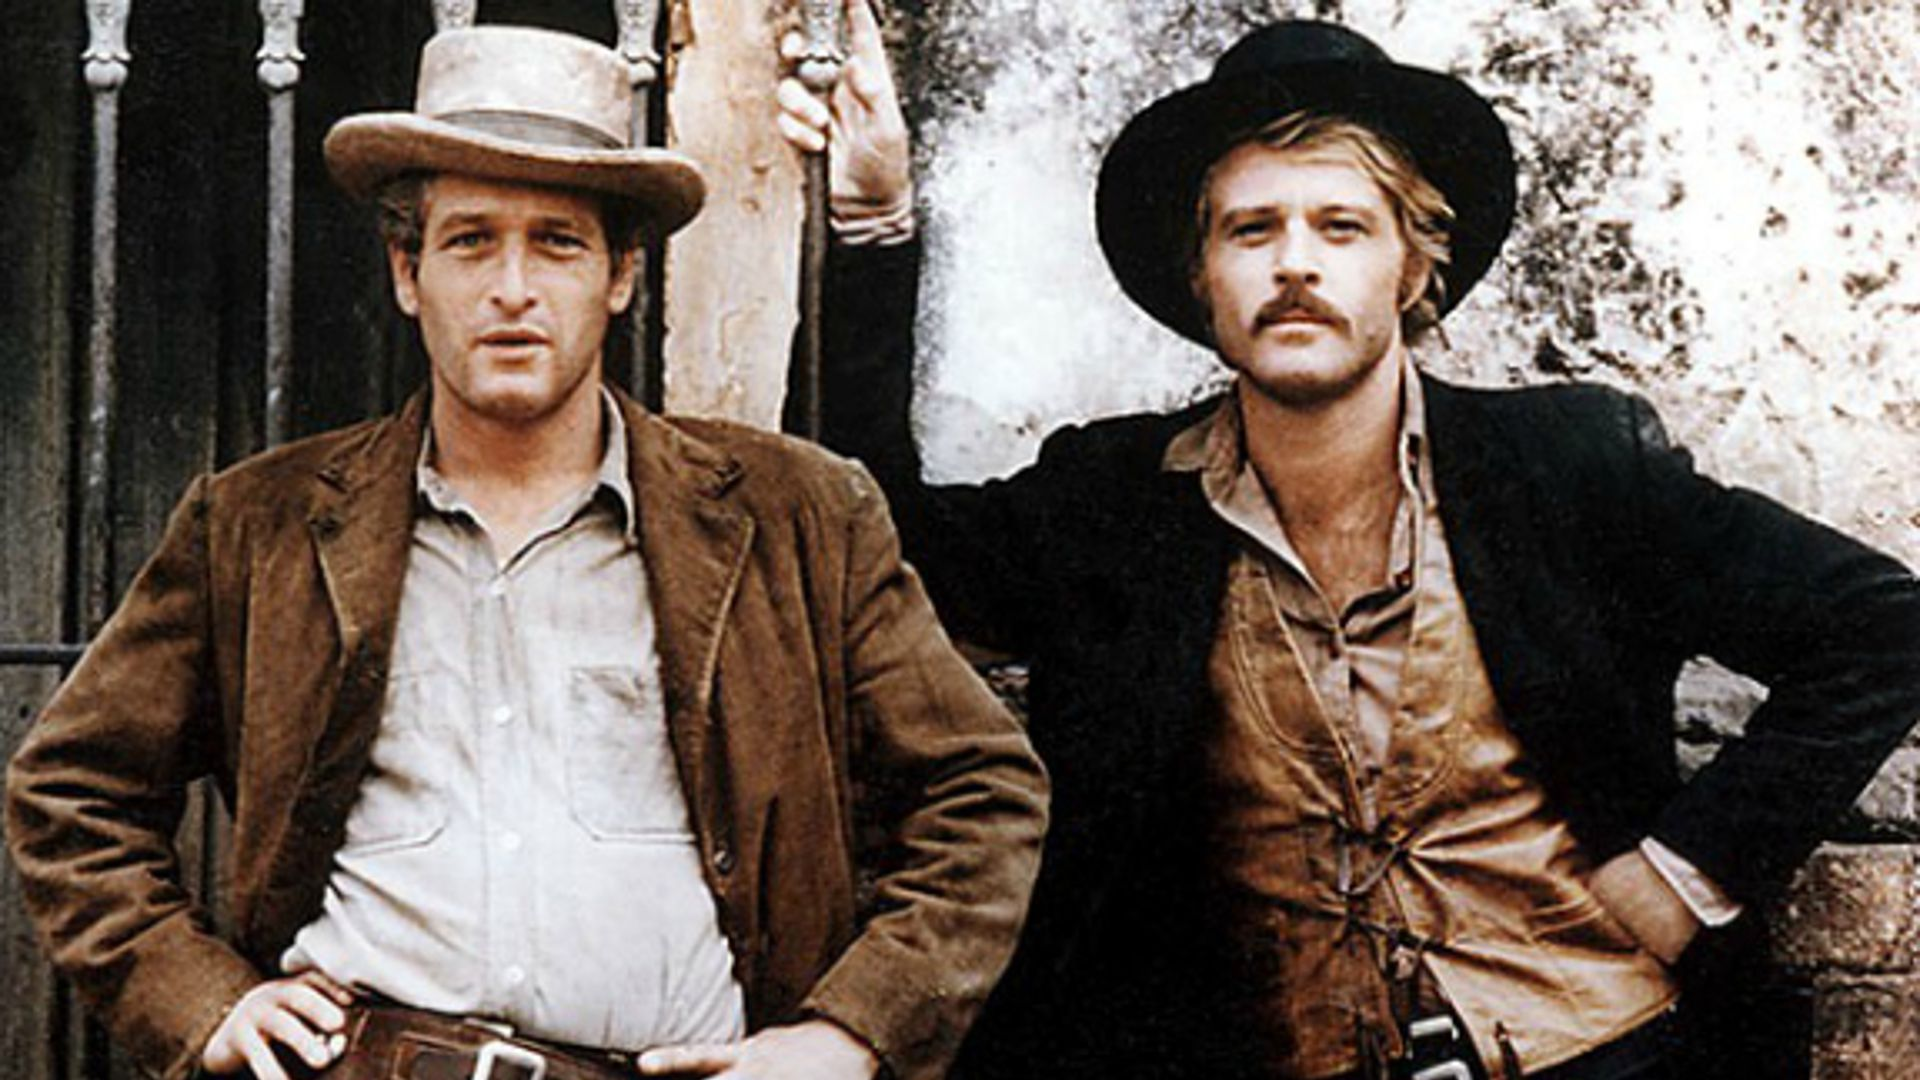 Butch and Sundance.